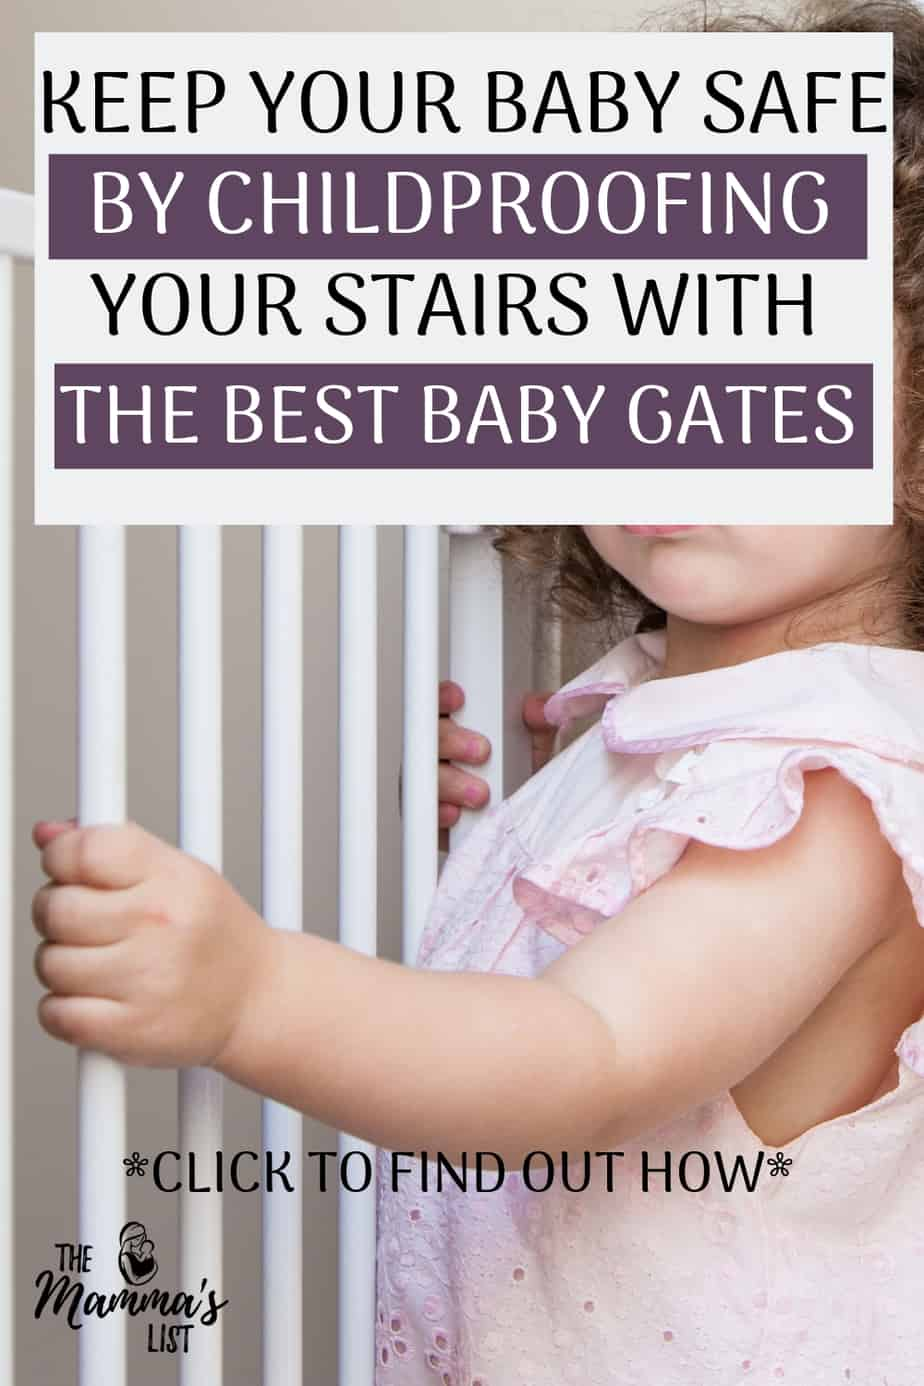 Childproofing is tricky, and the top of the stairs are a critical space to get right. Check out all the baby gate options to keep your stairway and infants safe. Installing the proper baby gate will go a long way to ensuring your baby stays safe the first year, no matter how many flights of stairs you have!